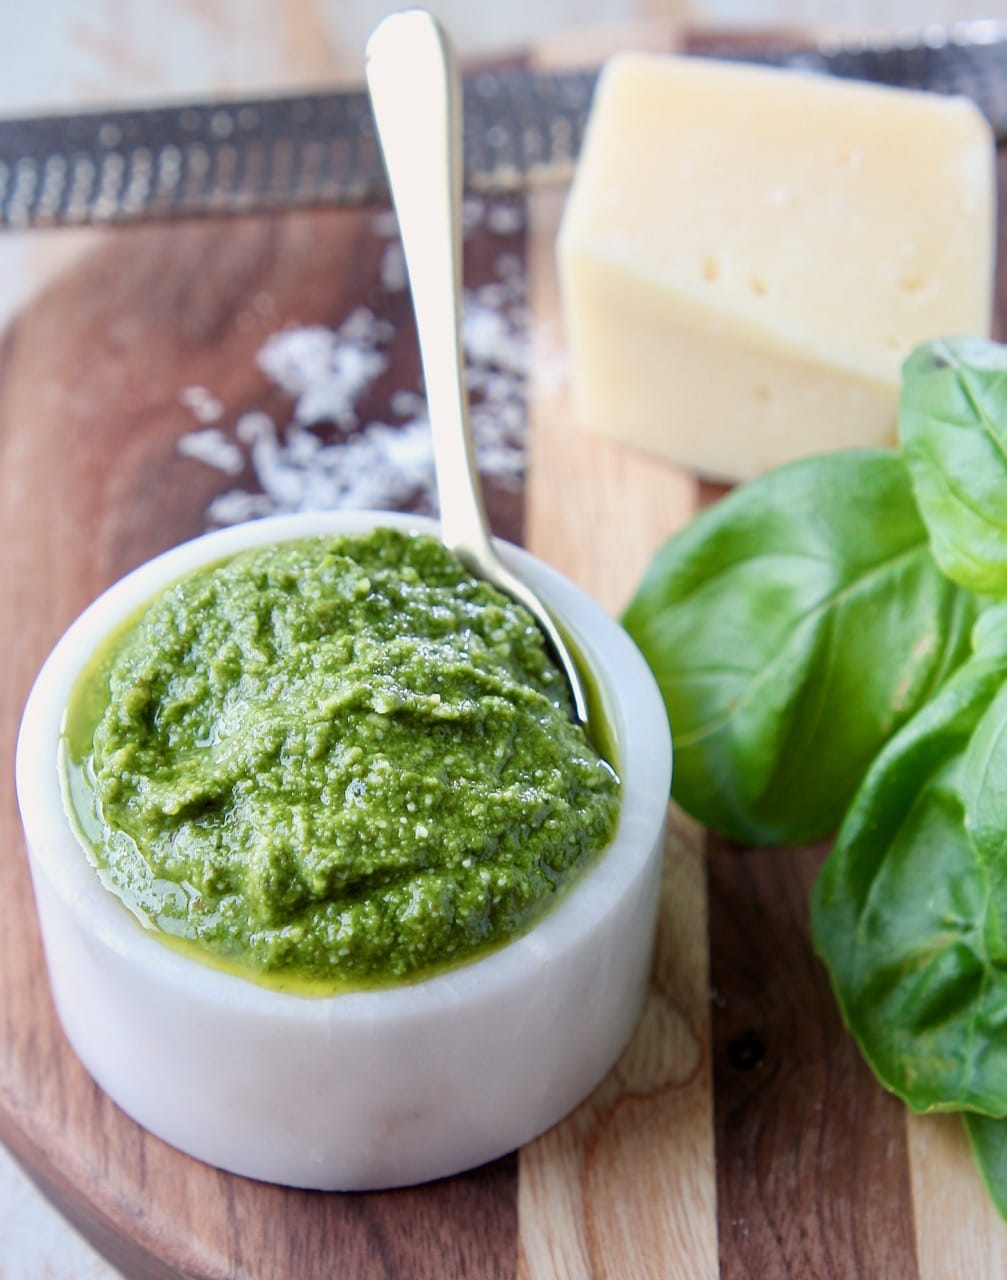 Basil pesto in small white bowl sitting next to fresh basil leaves and a block of parmesan cheese